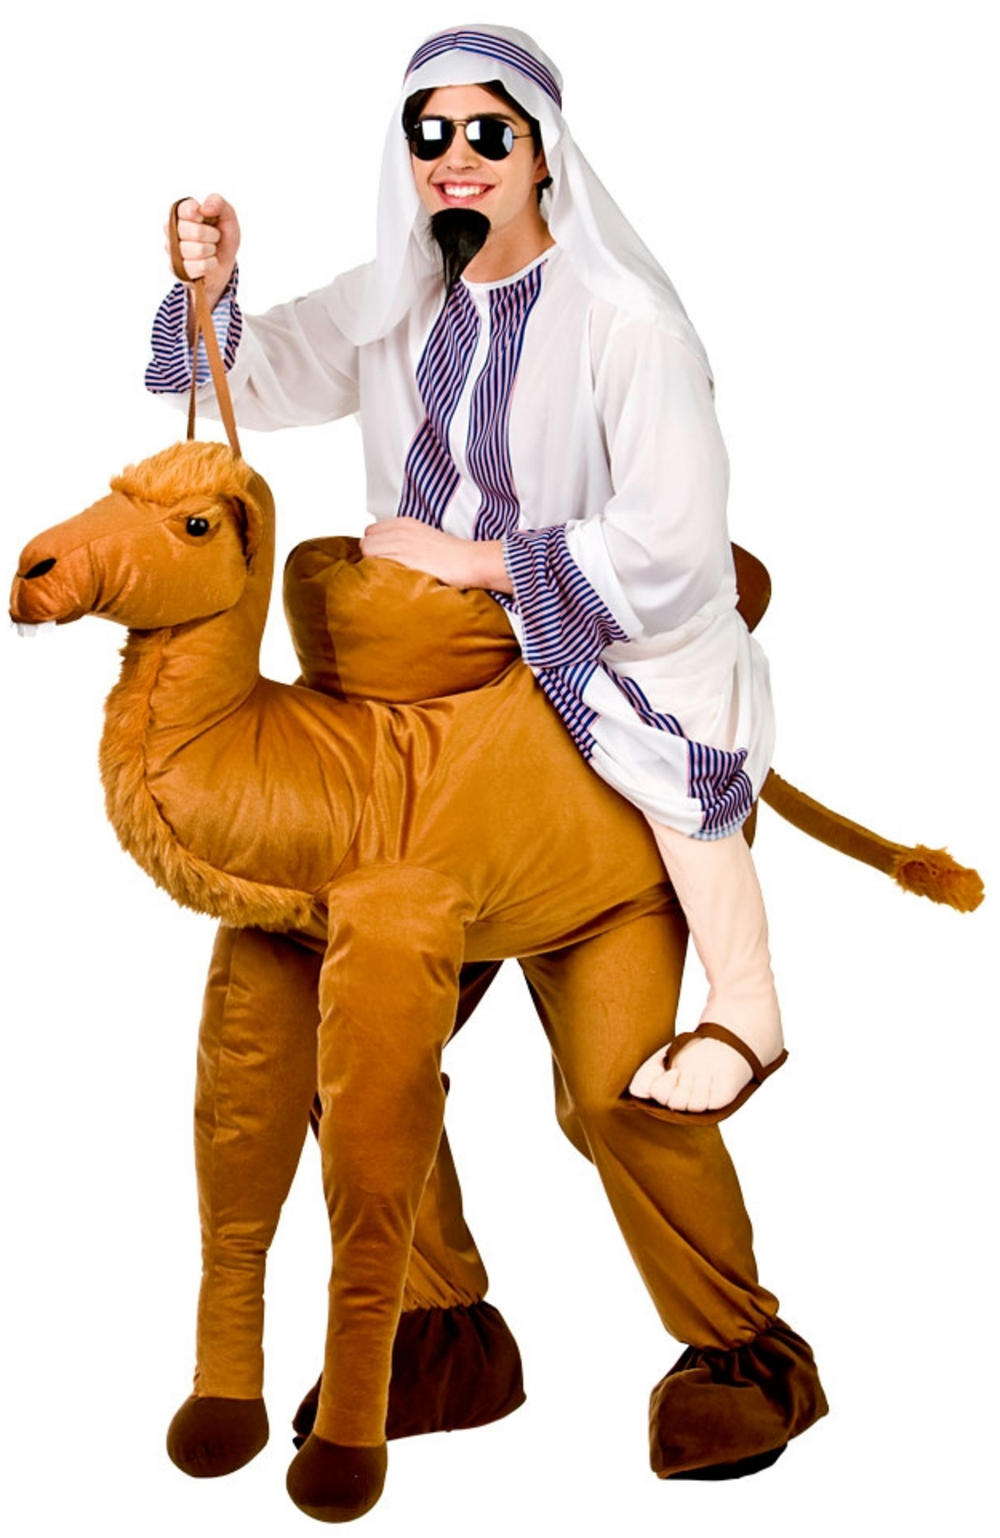 Giant Ride On Camel Costume